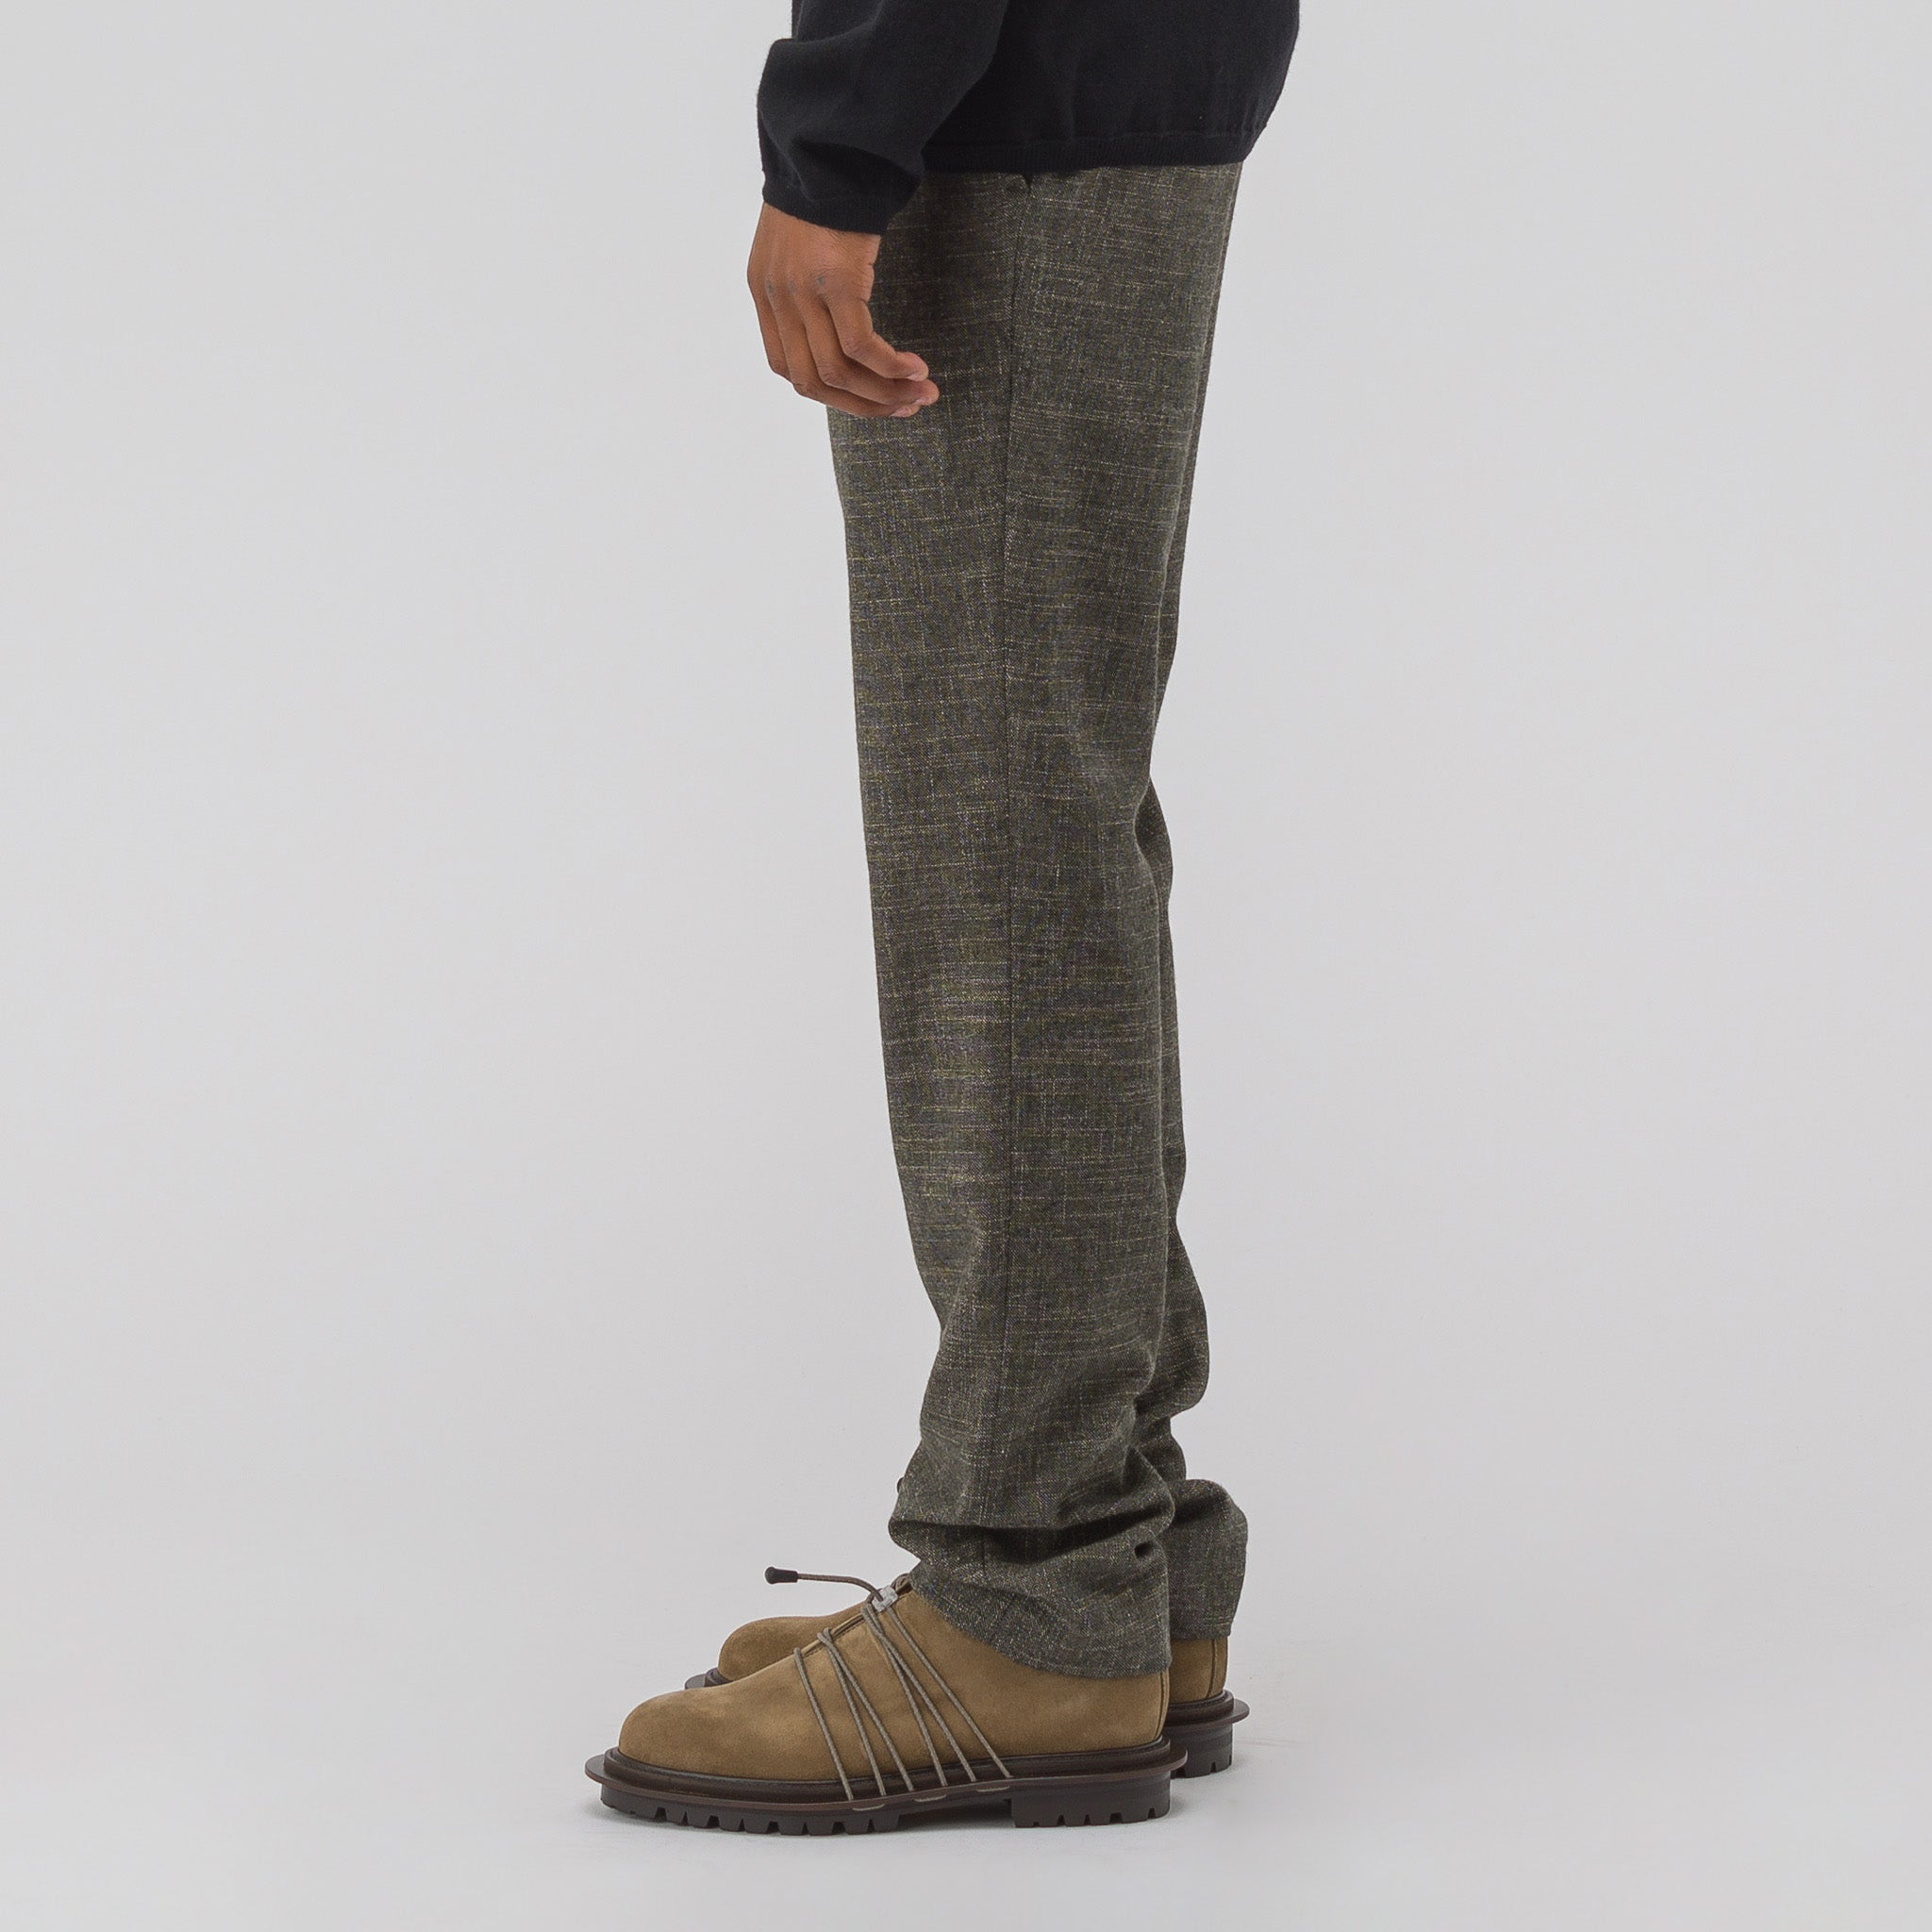 Comb Trousers in Khaki